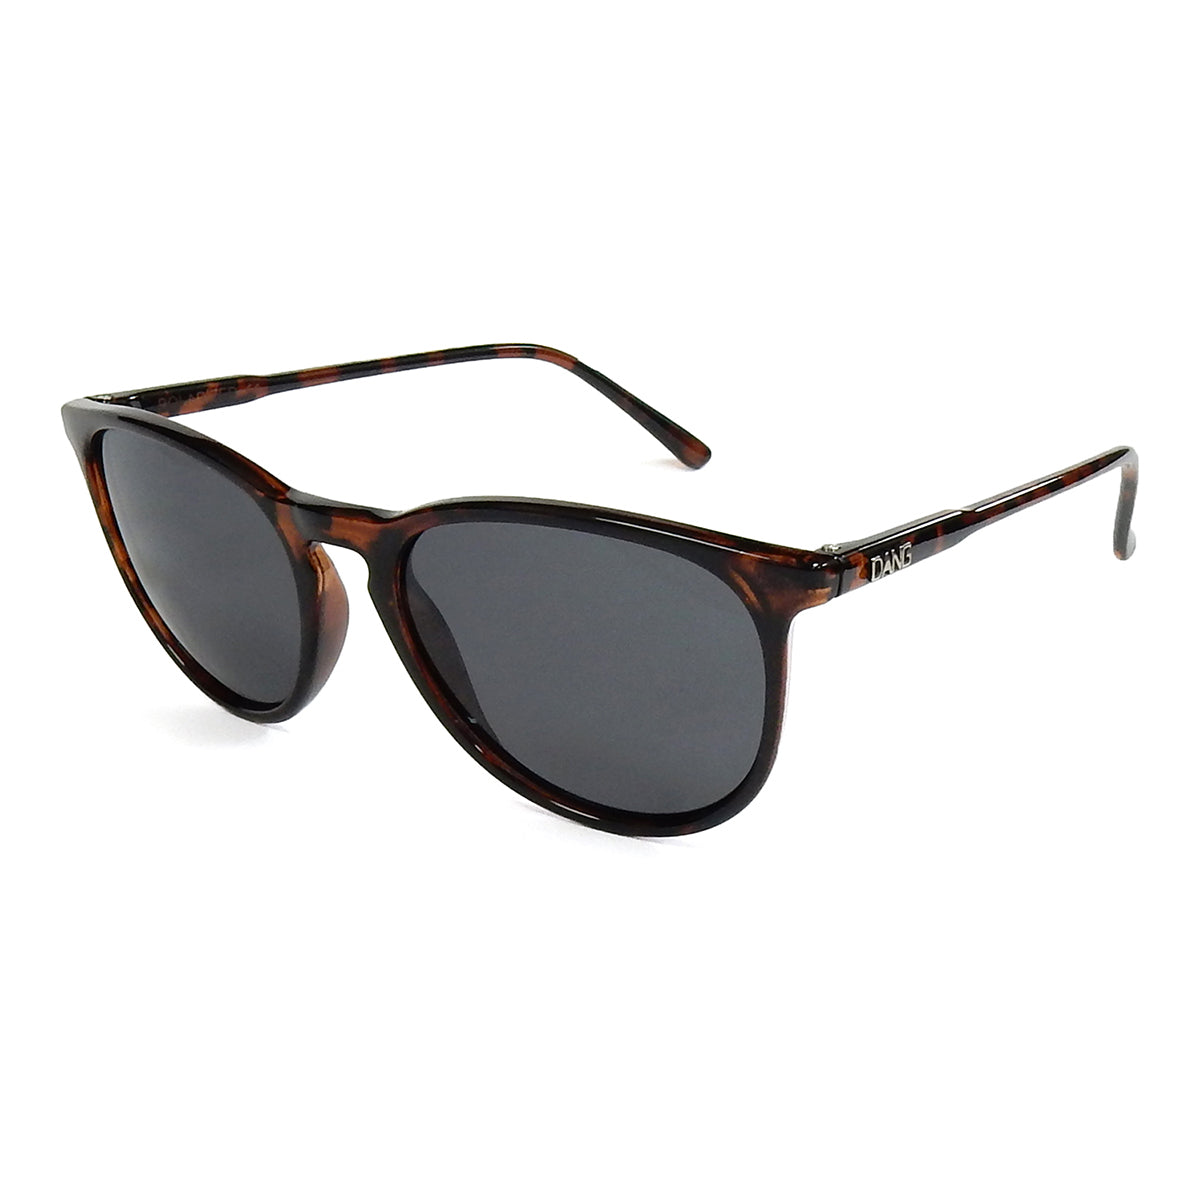 FENTON Brown Tortoise x Black Polarized